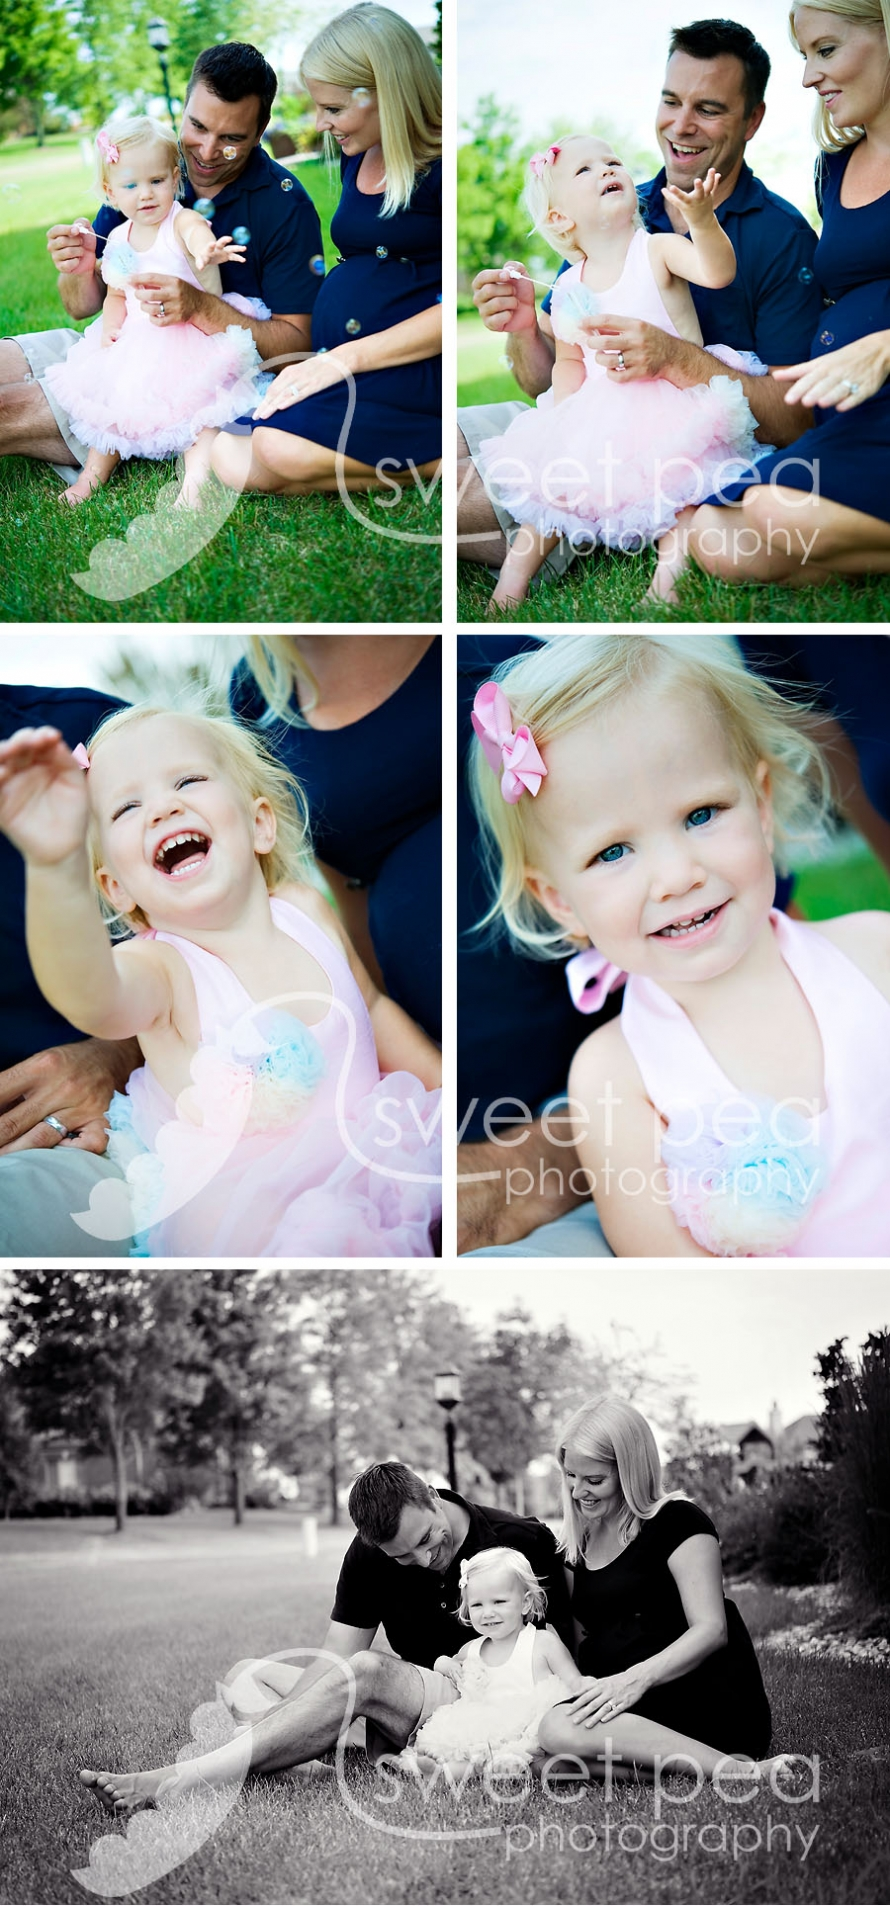 champaign_family_photographer072510